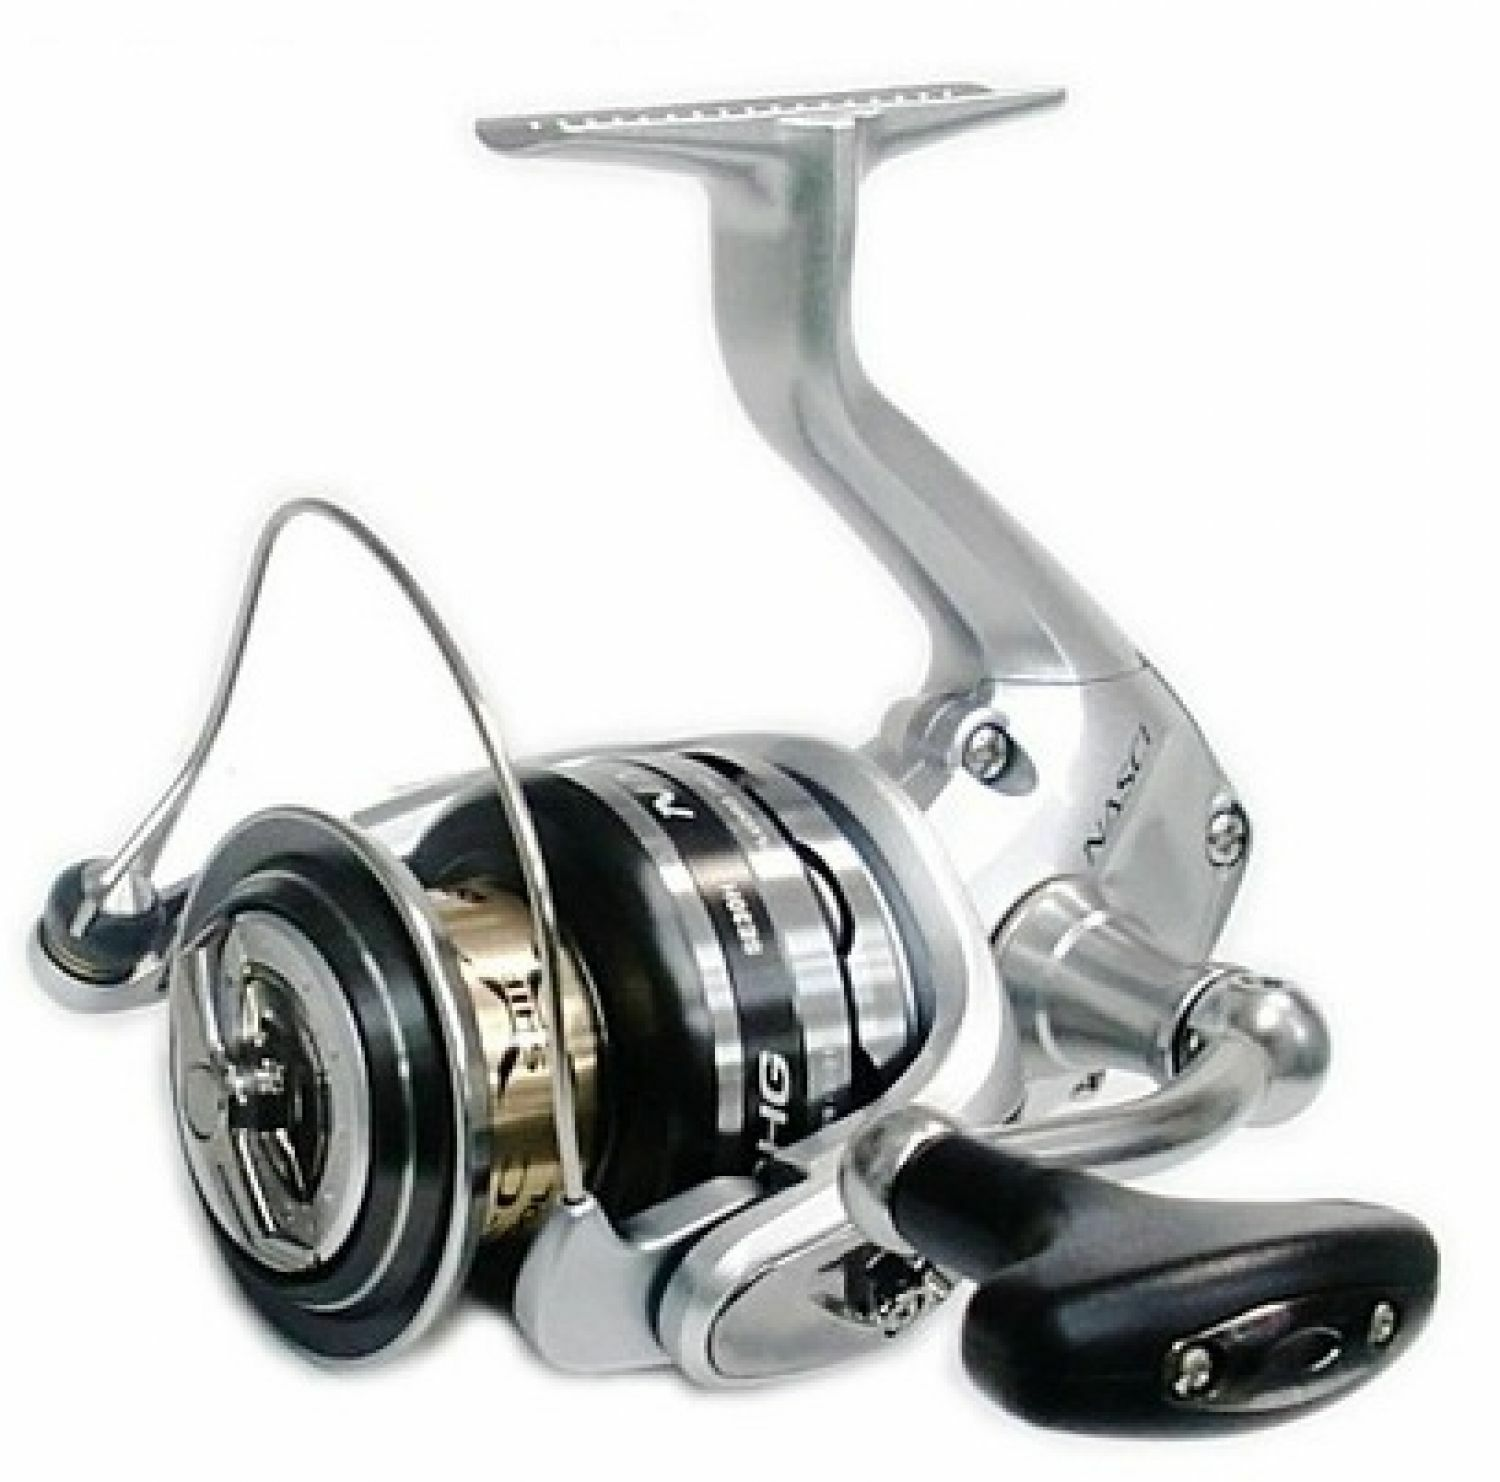 Shimano Nasci 4000 HG Spinnrolle Frontbremsrolle Angelrolle Angeln